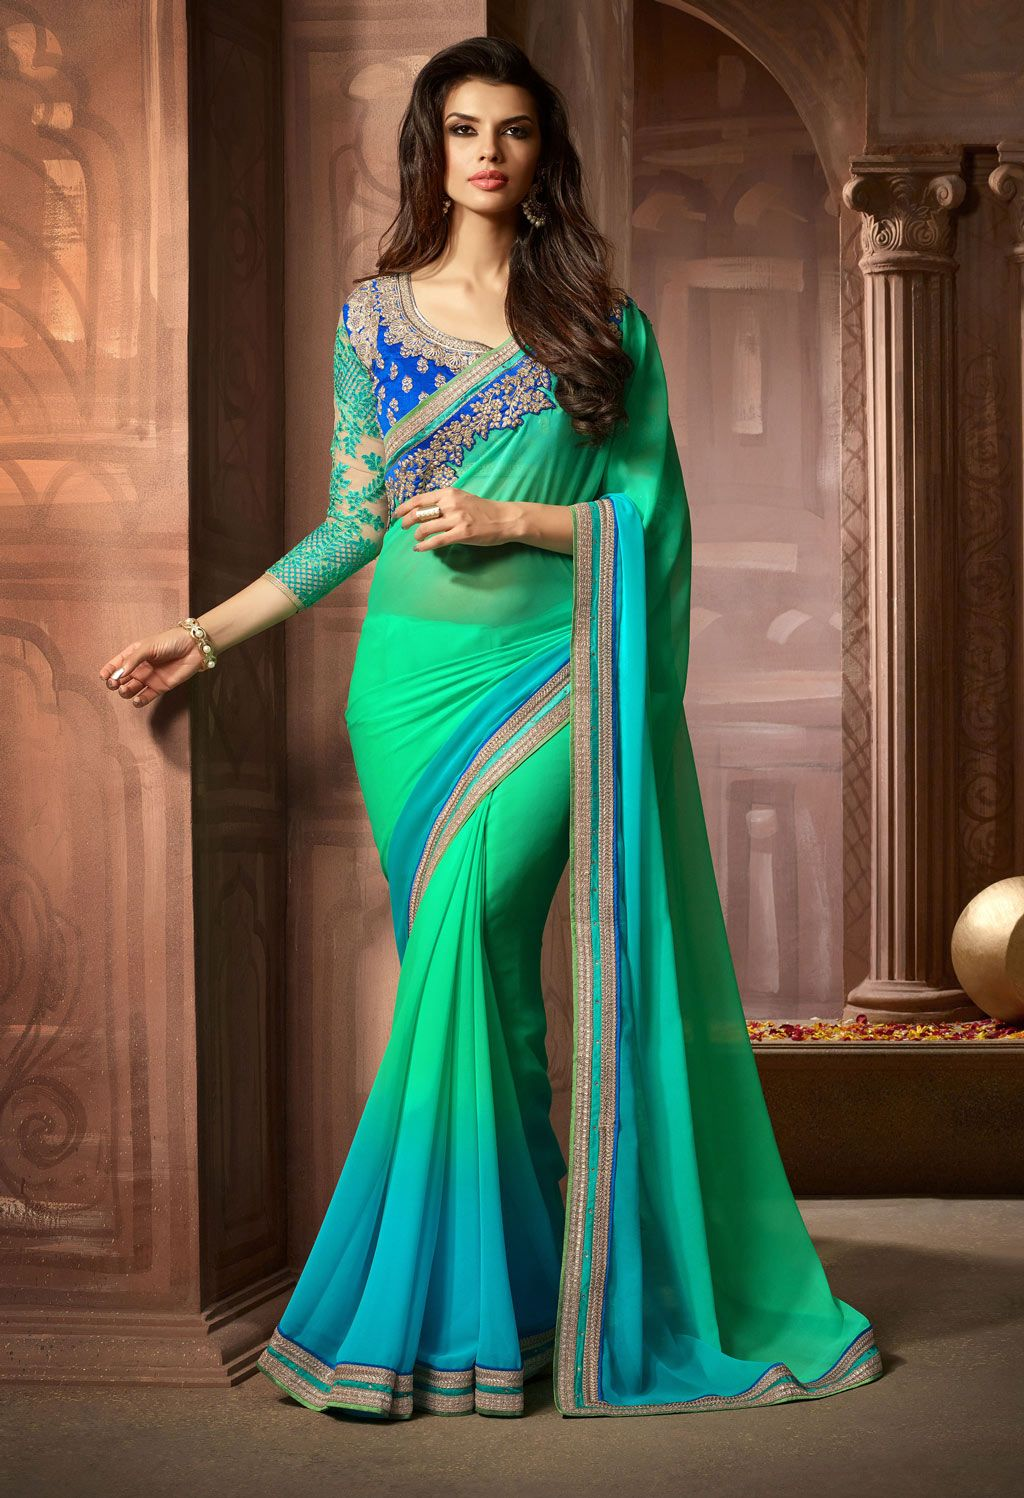 Royal blue n yellow dress  Sky Blue Georgette Party Wear Saree   Indian Clothing